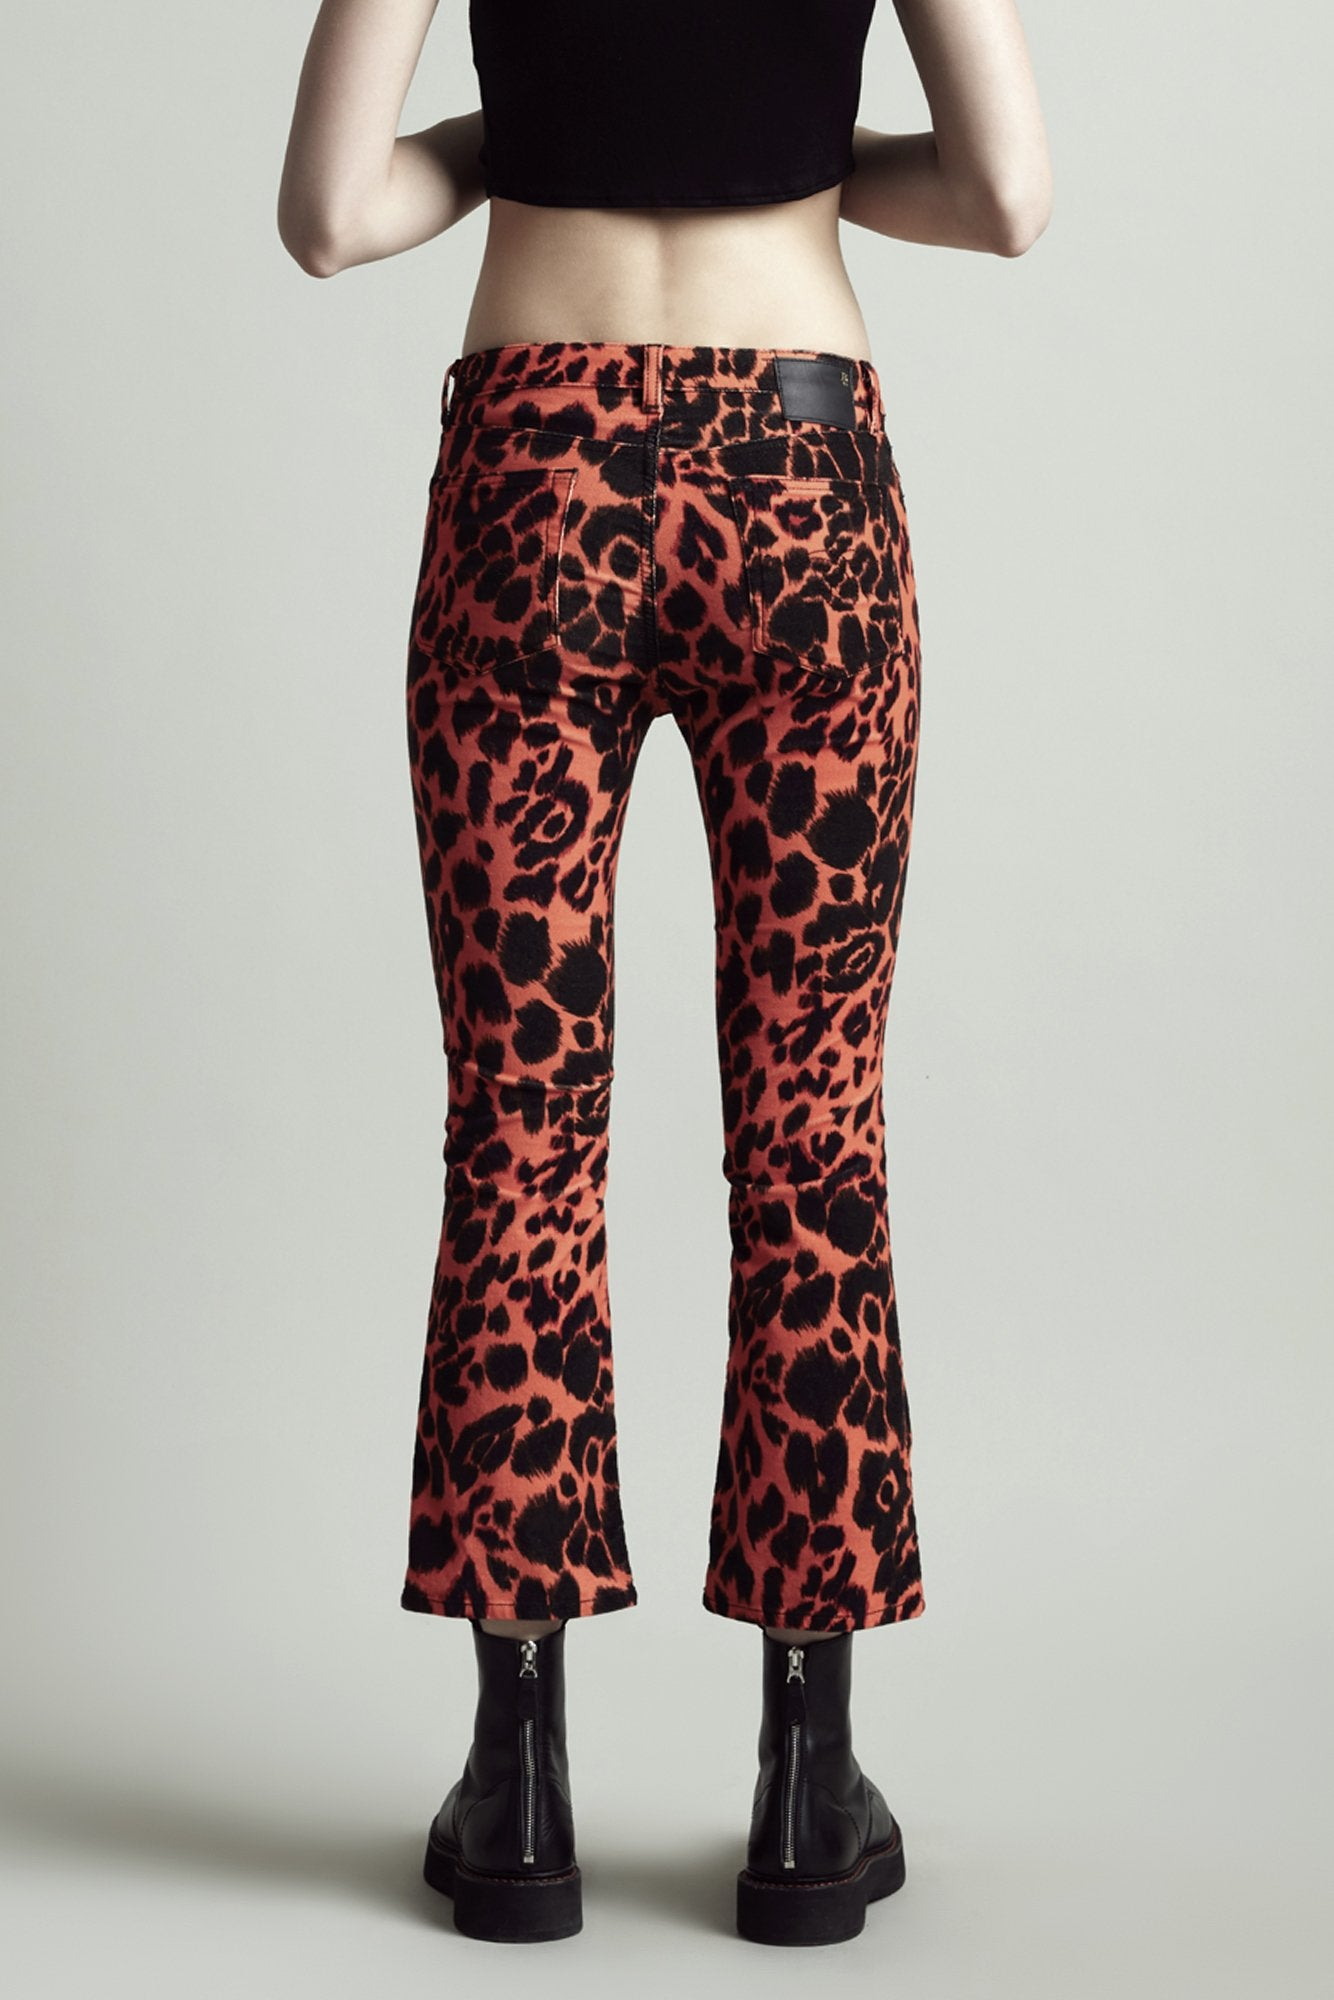 Kick Fit – Orange Leopard